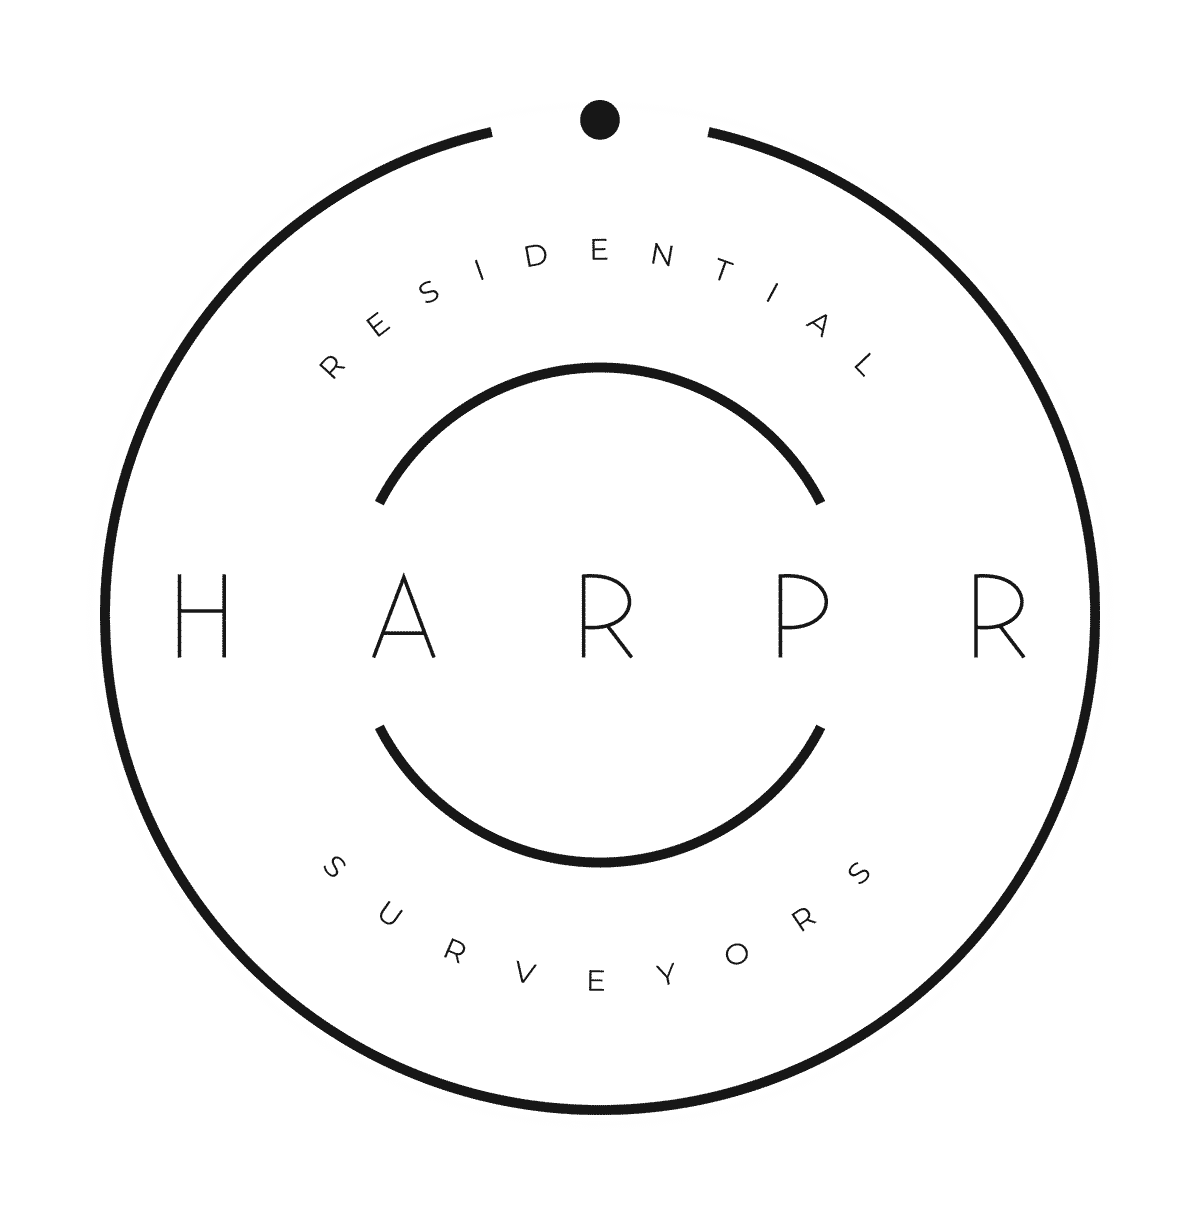 Harpr Surveyors